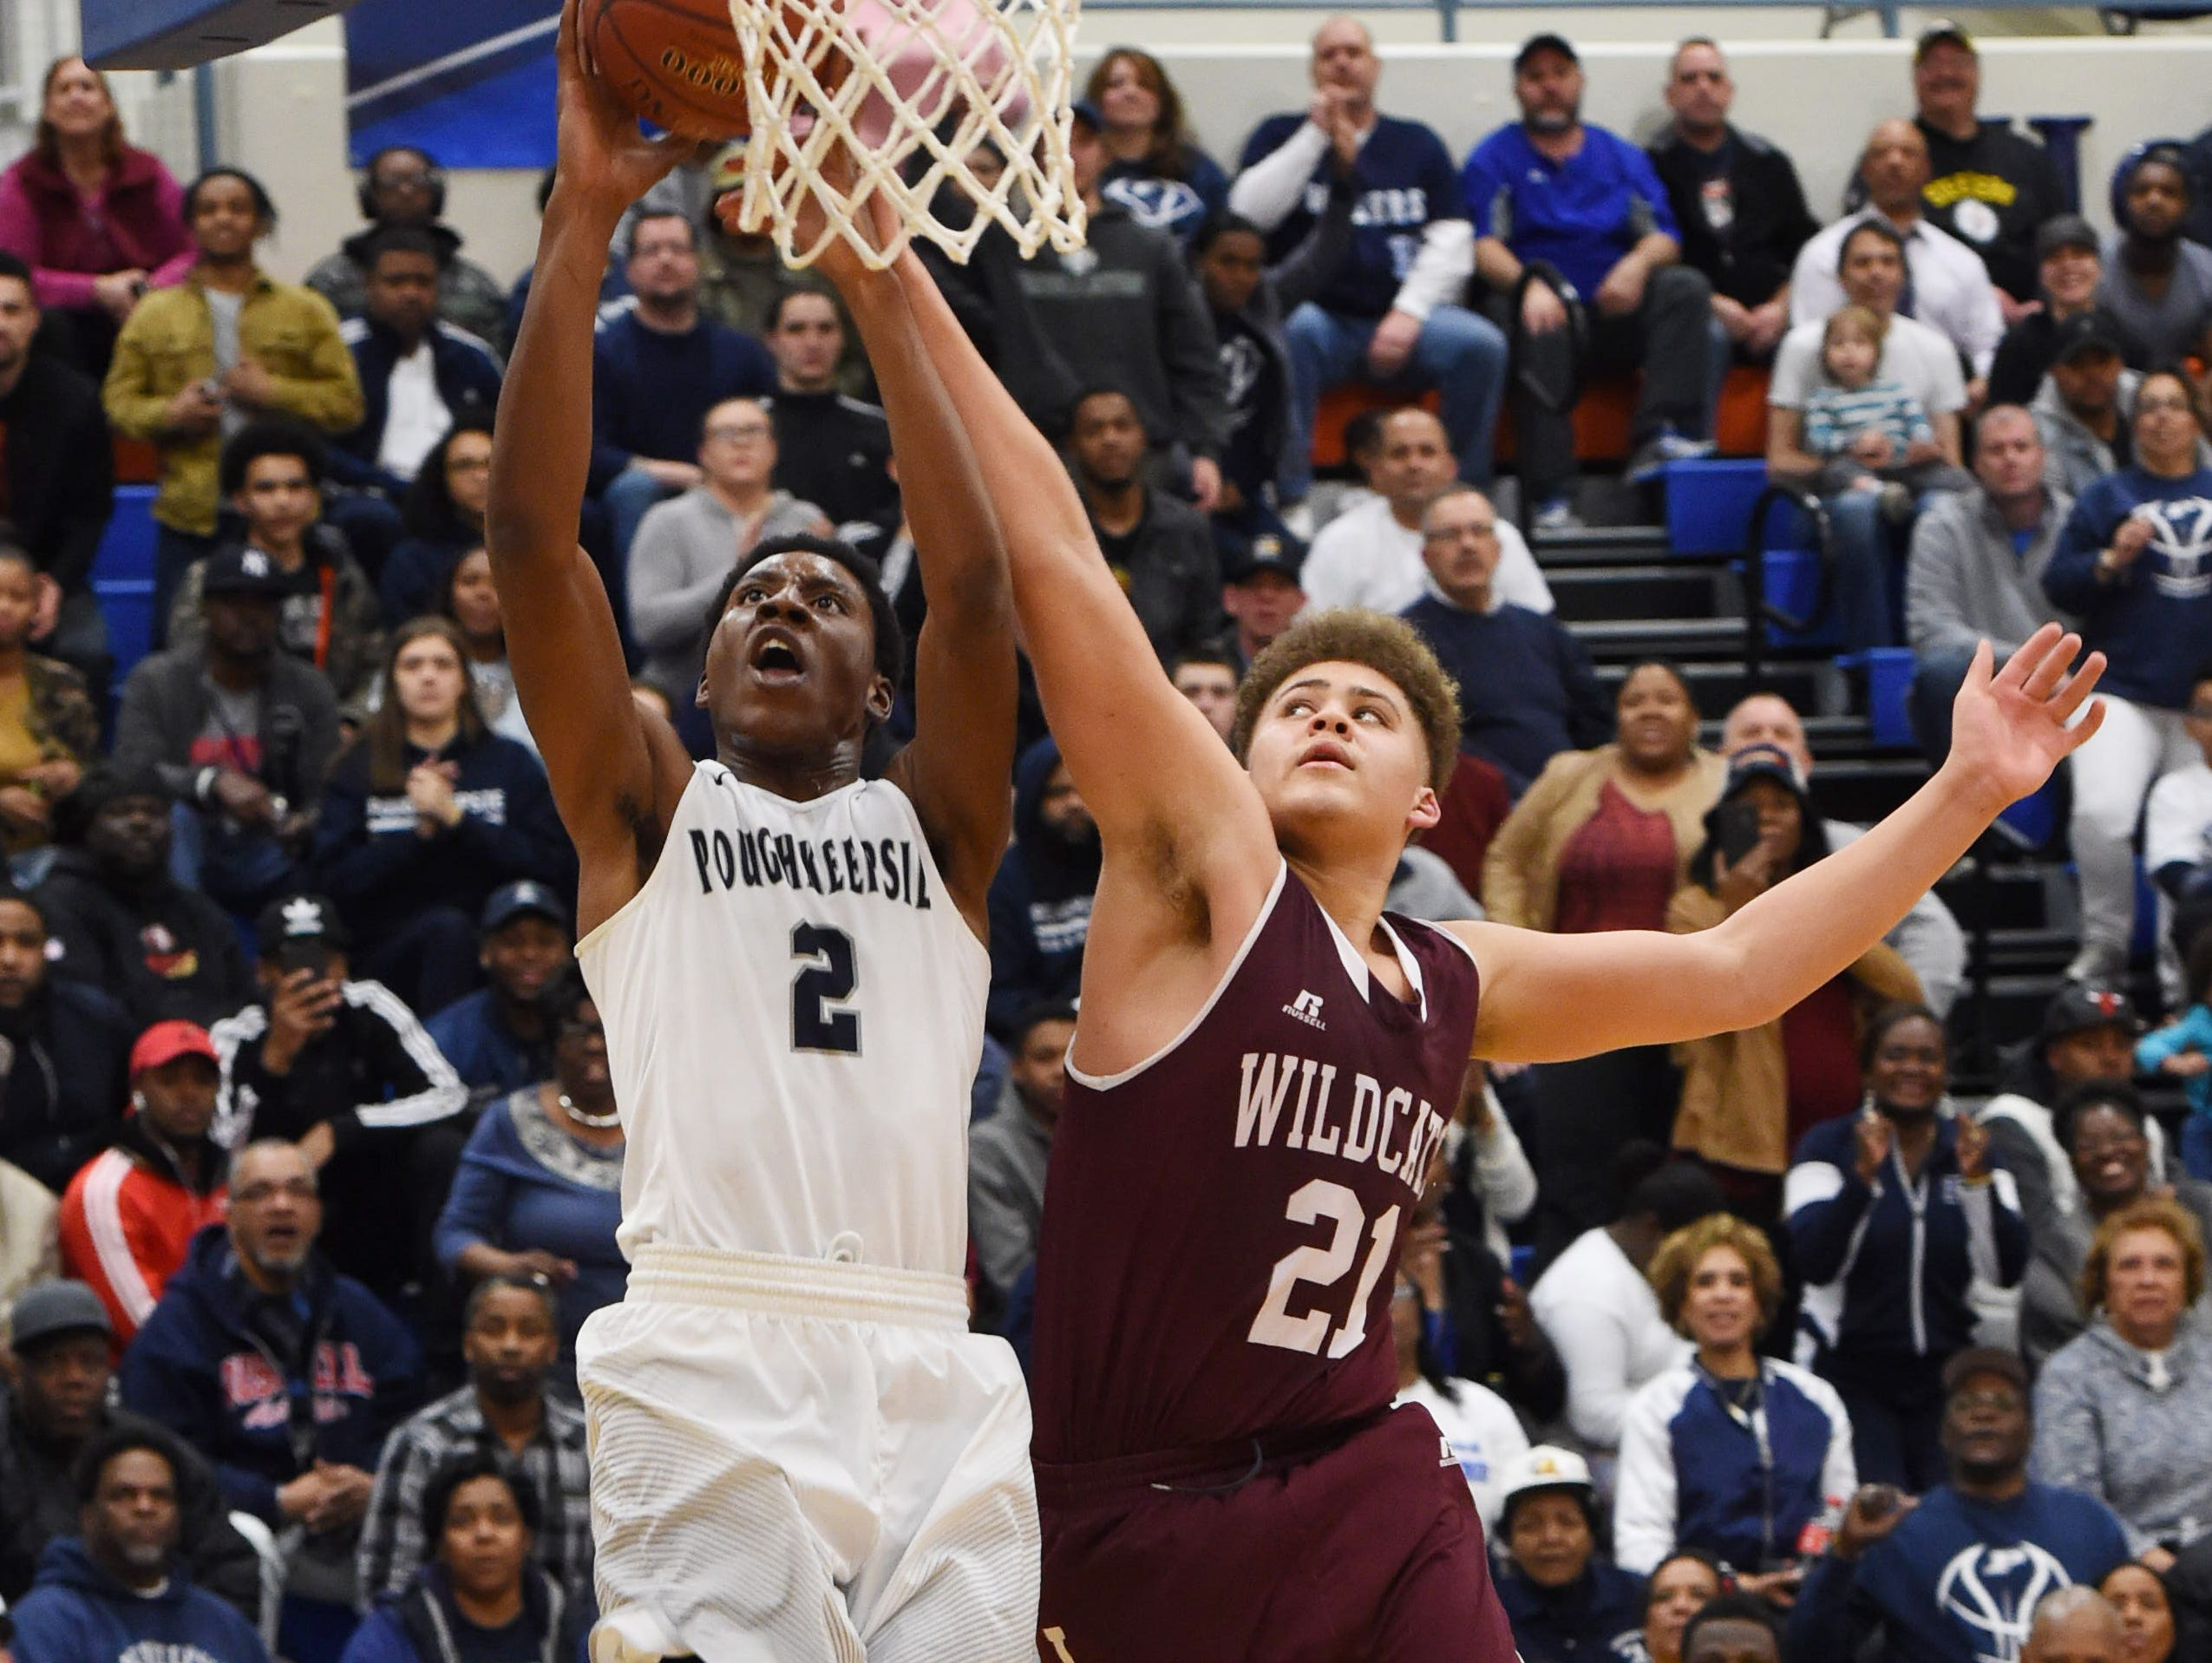 Poughkeepsie High School's Marvin Lunsford, left, goes for a dunk while Johnson City's Xavier Hill, right, defends during the Class A regional semifinal game at SUNY New Paltz.